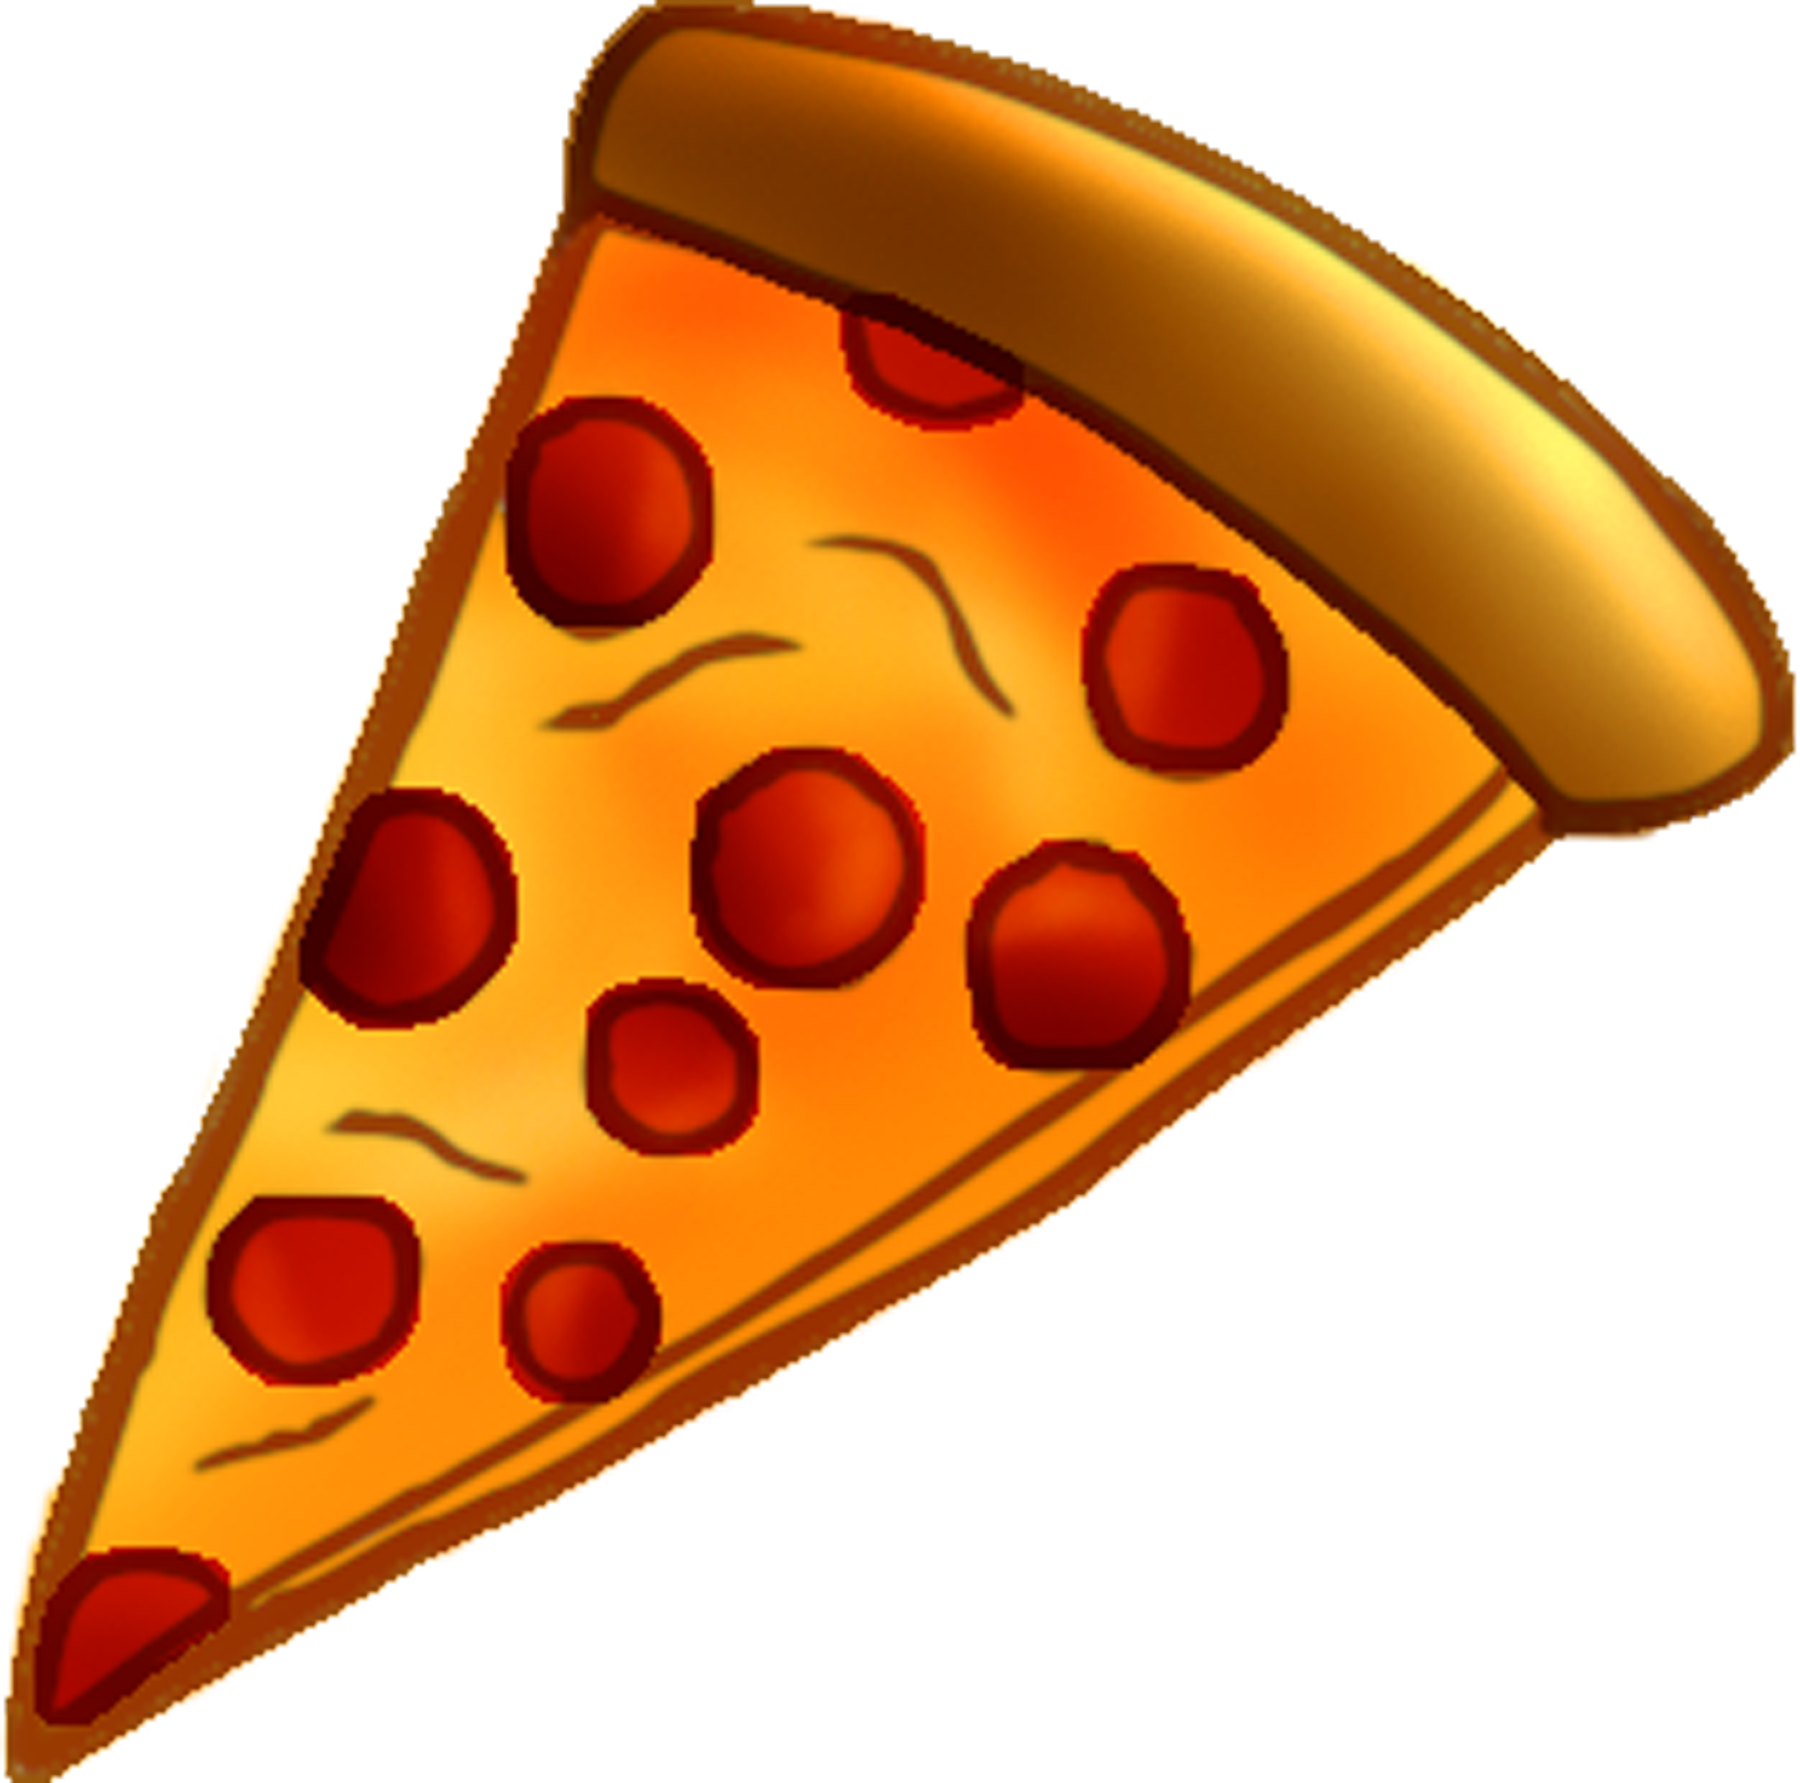 Pizza slice cartoon png